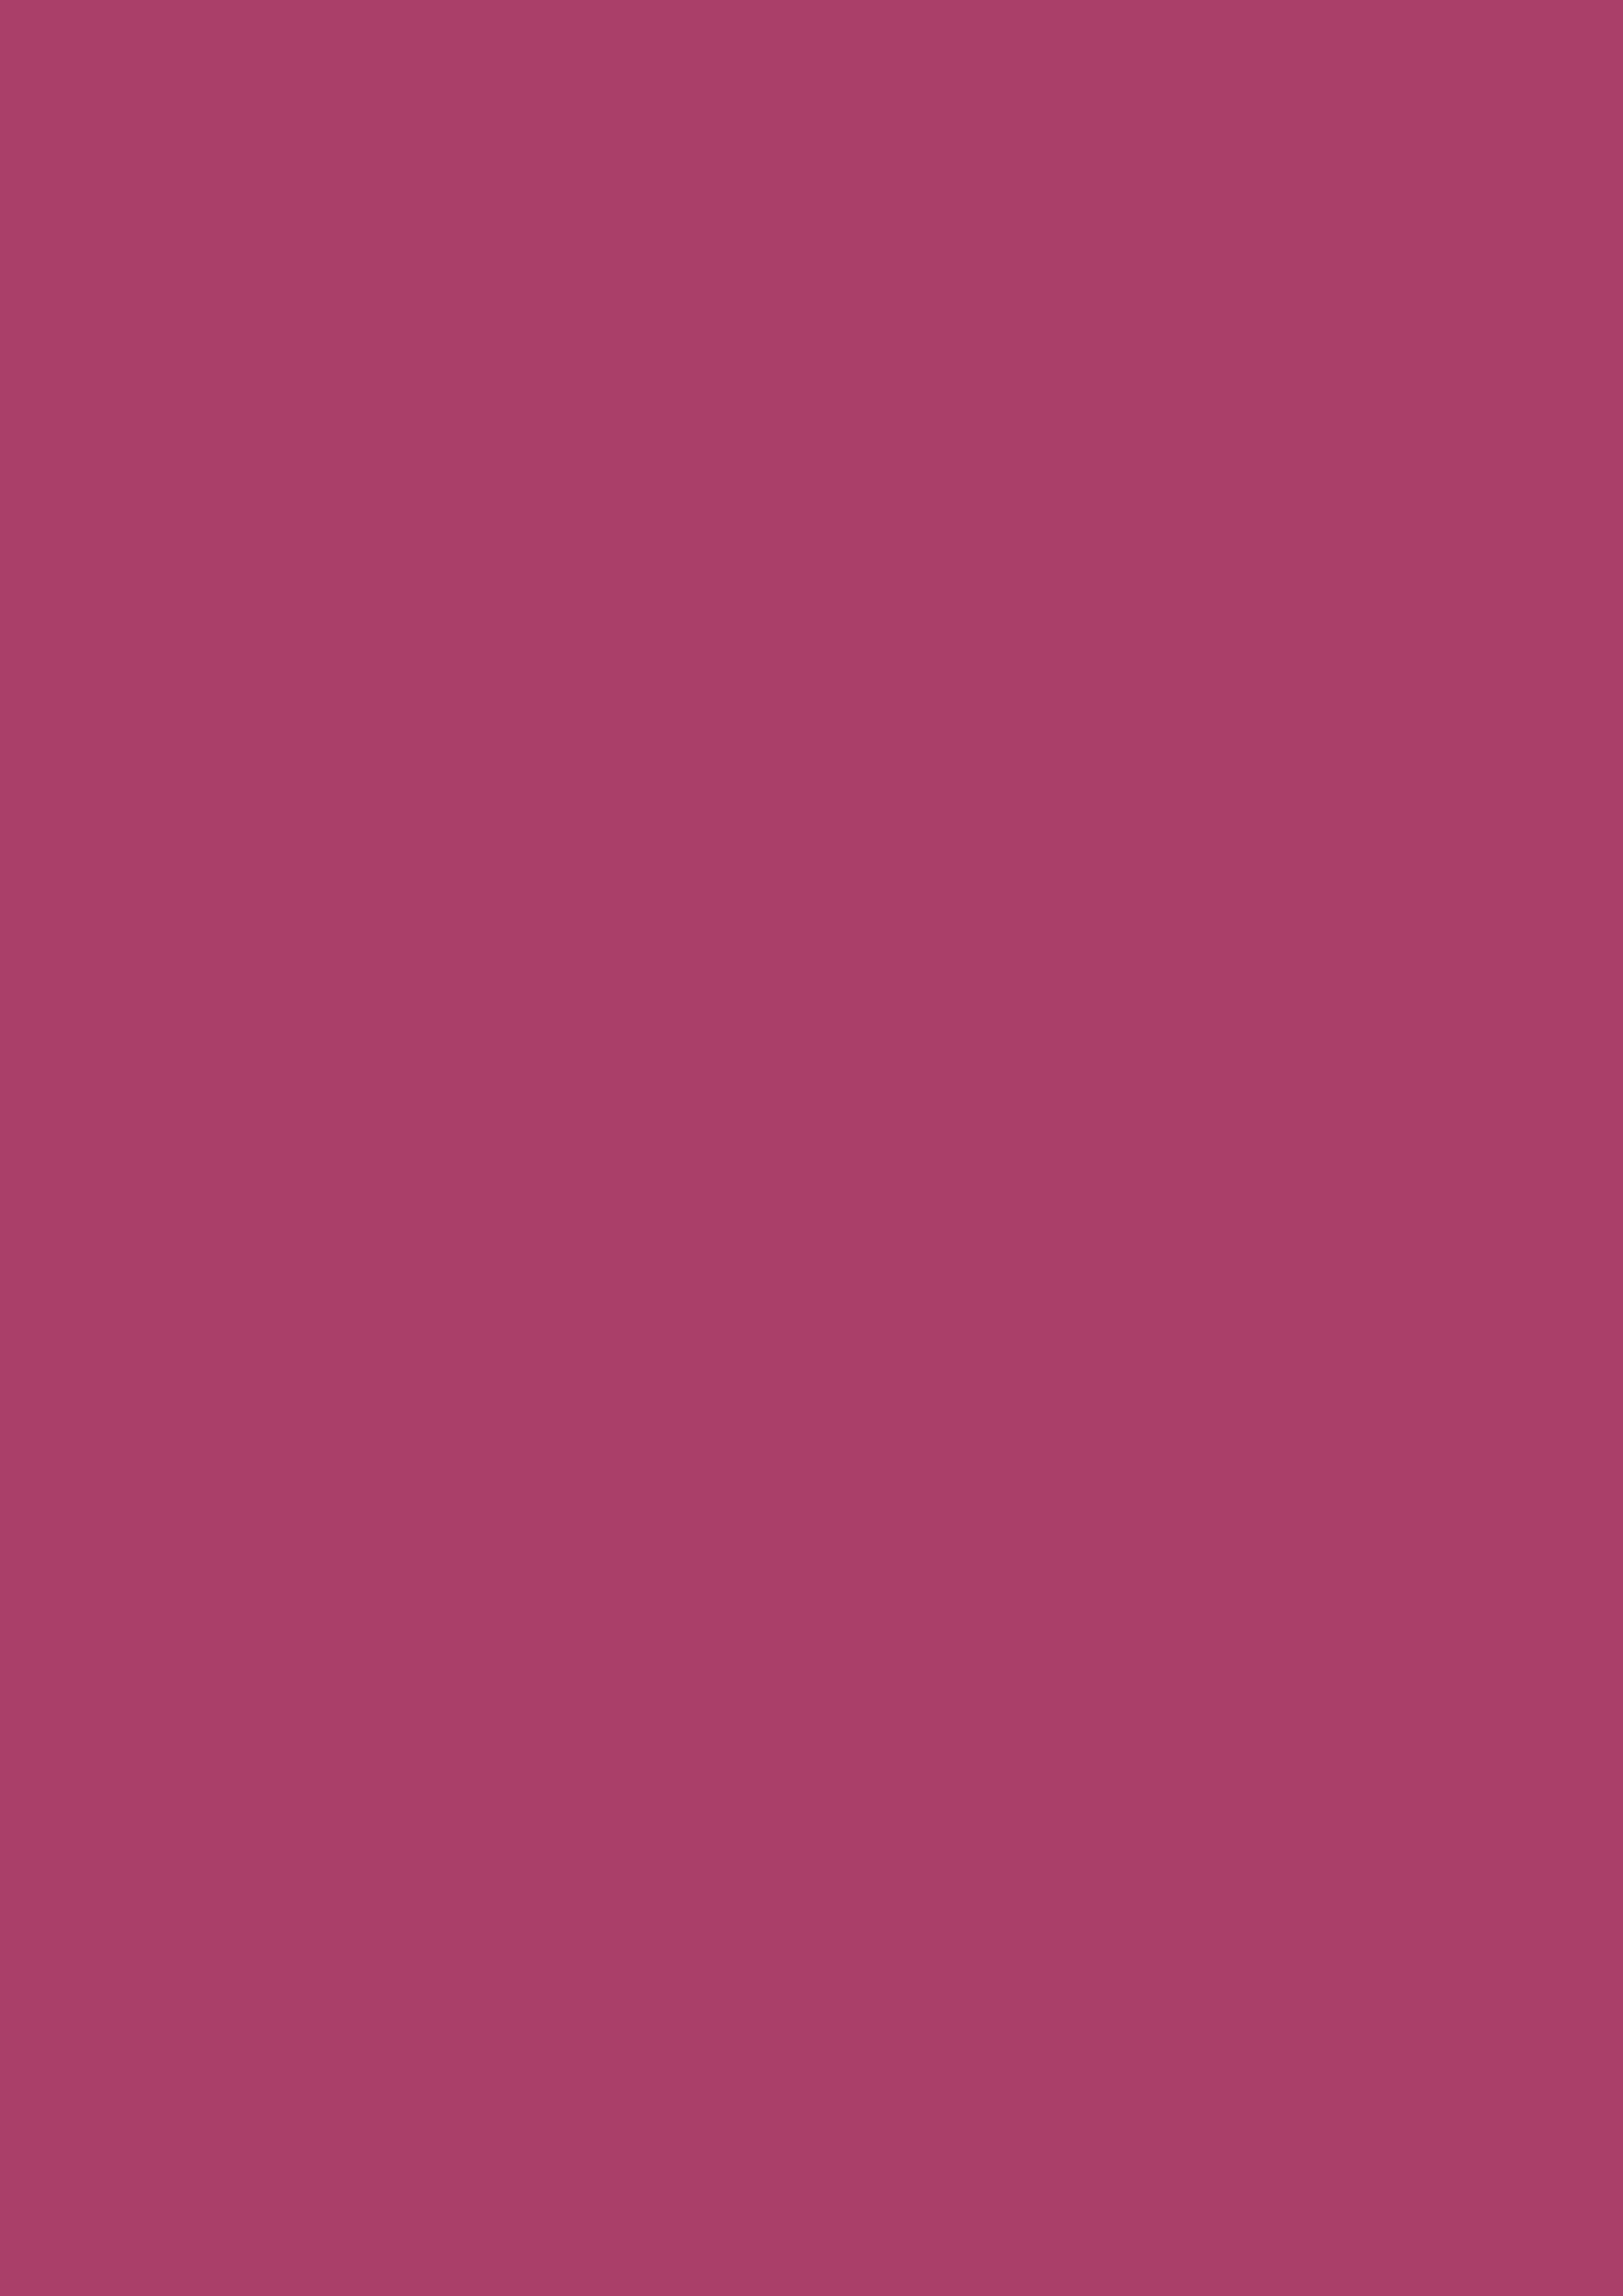 2480x3508 Medium Ruby Solid Color Background